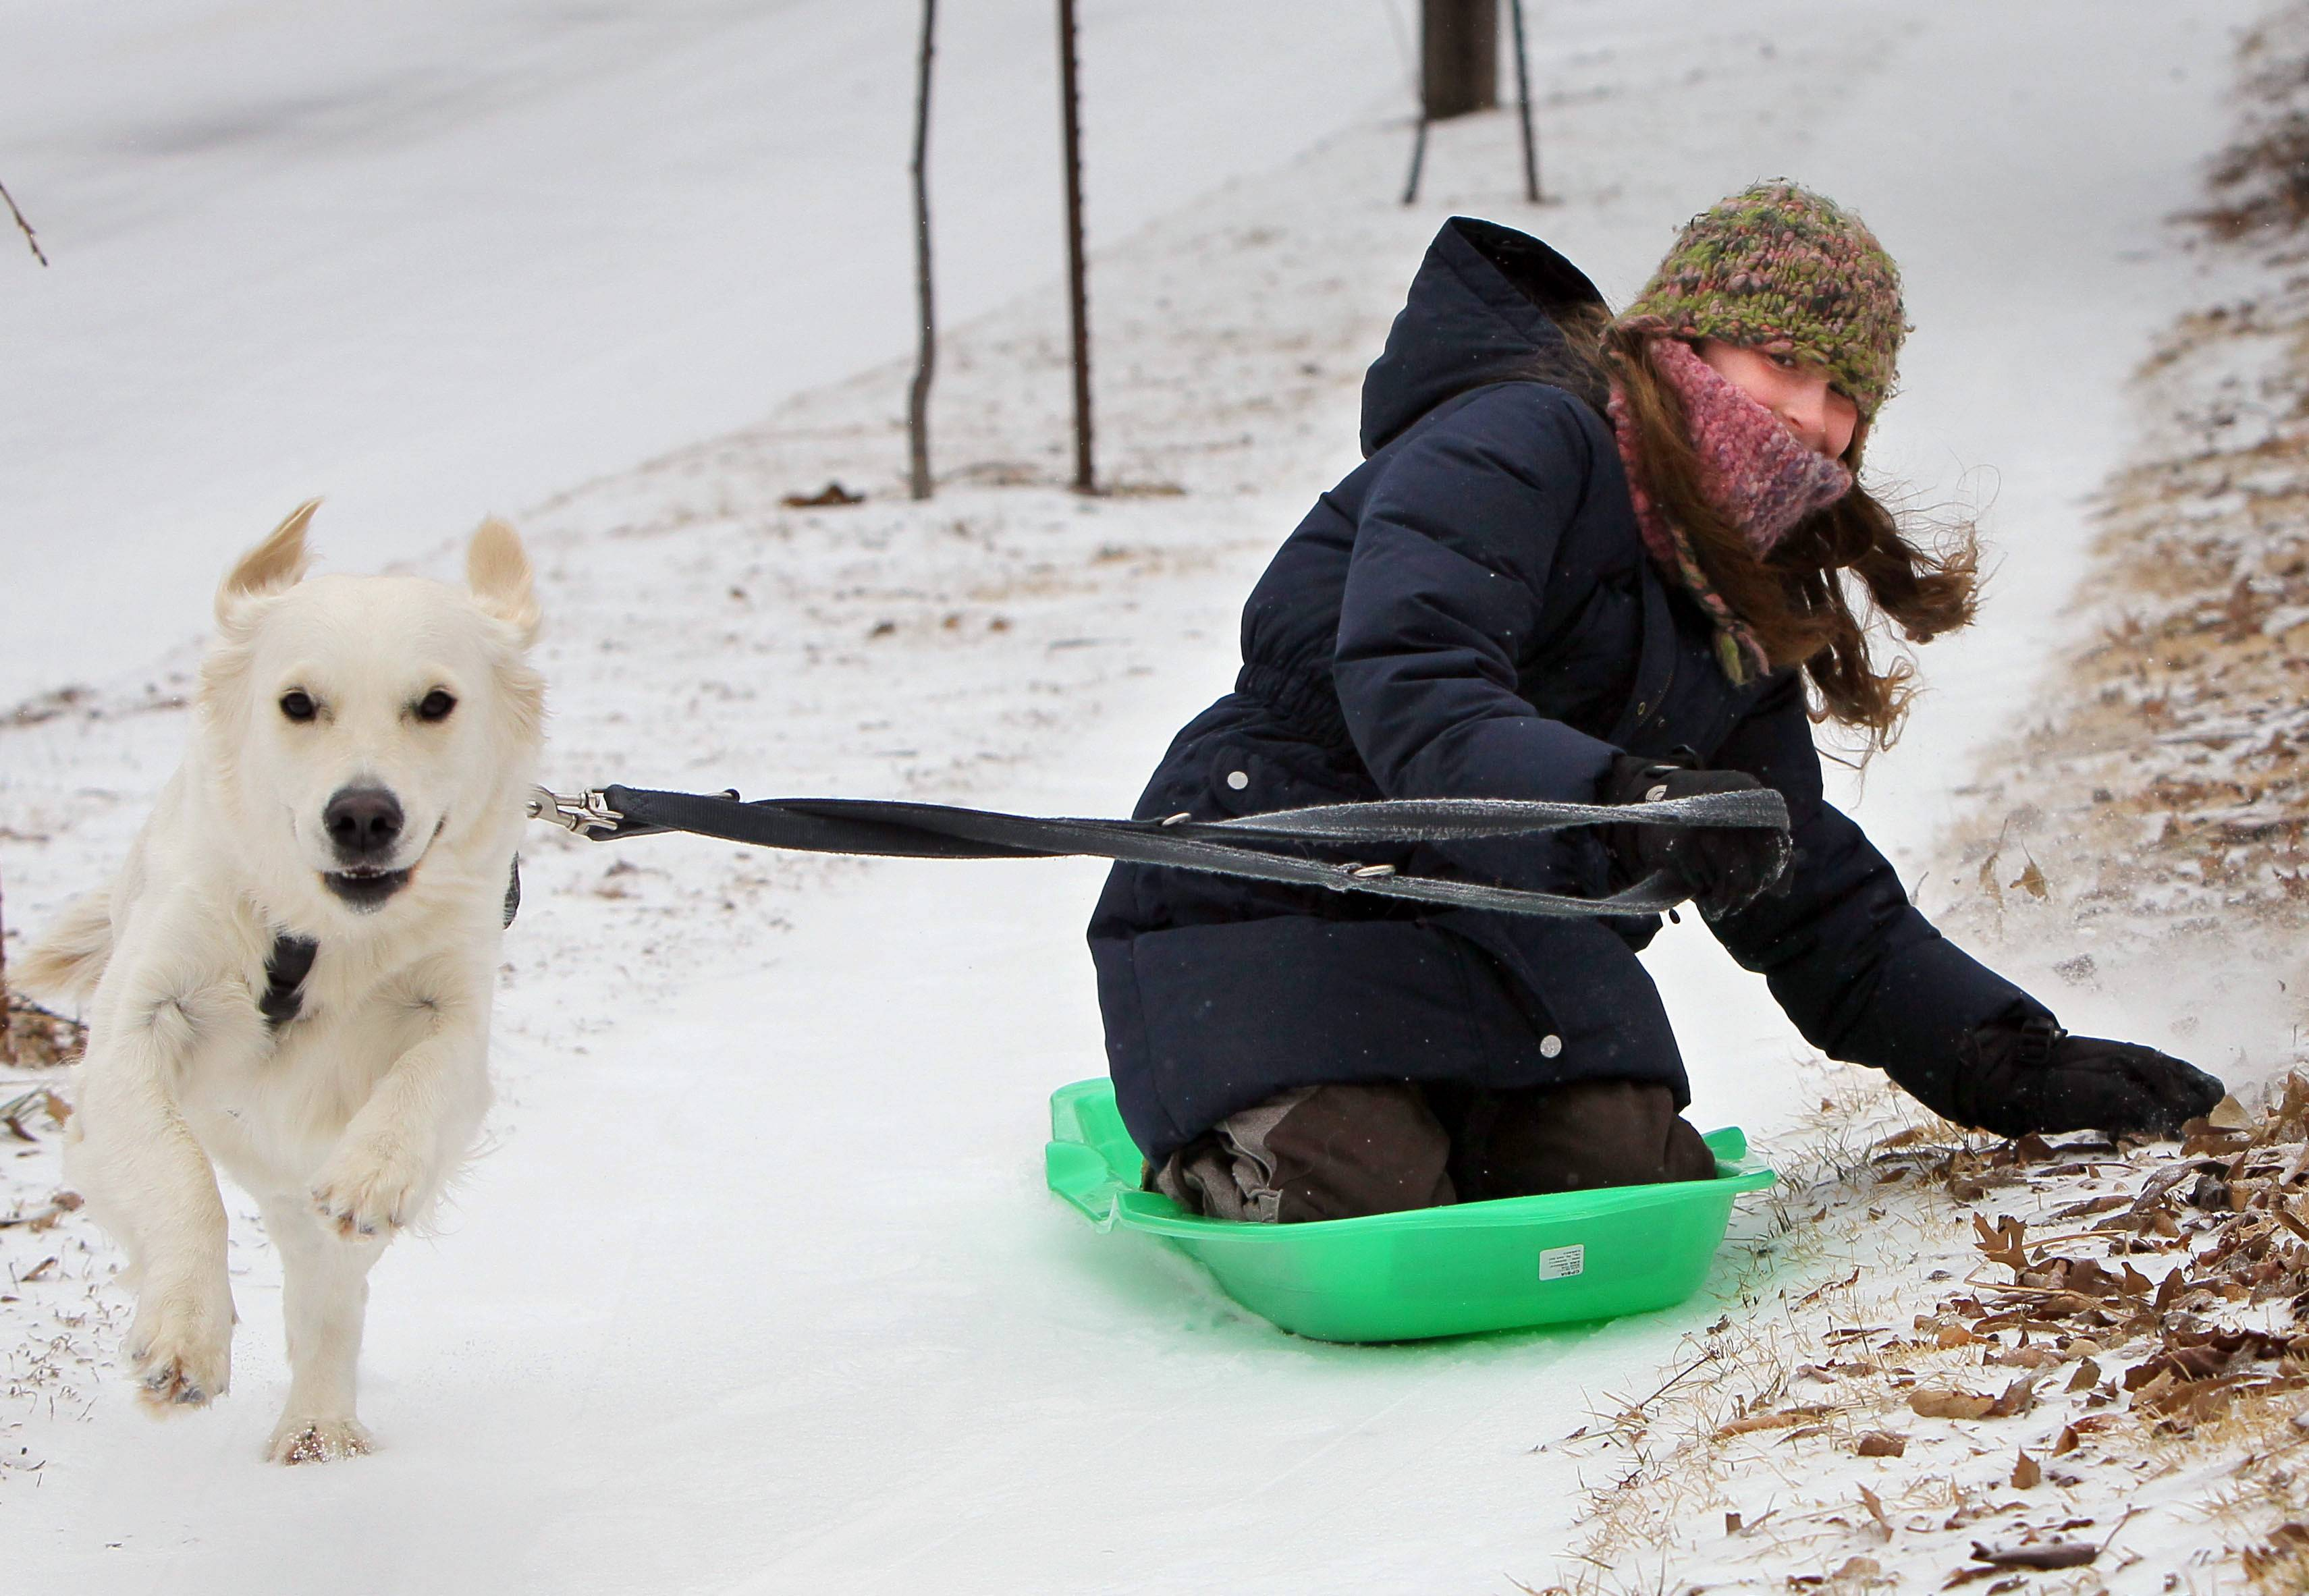 Mila Olias, 10, and her dog Momo take a sled run down a sidewalk Sunday in Richmond Heights, Mo. A winter storm packing high winds, ice and heavy snow threatened to create hazardous driving conditions across Kansas and Missouri, accompanied by wind chills approaching 25 below zero in some areas.